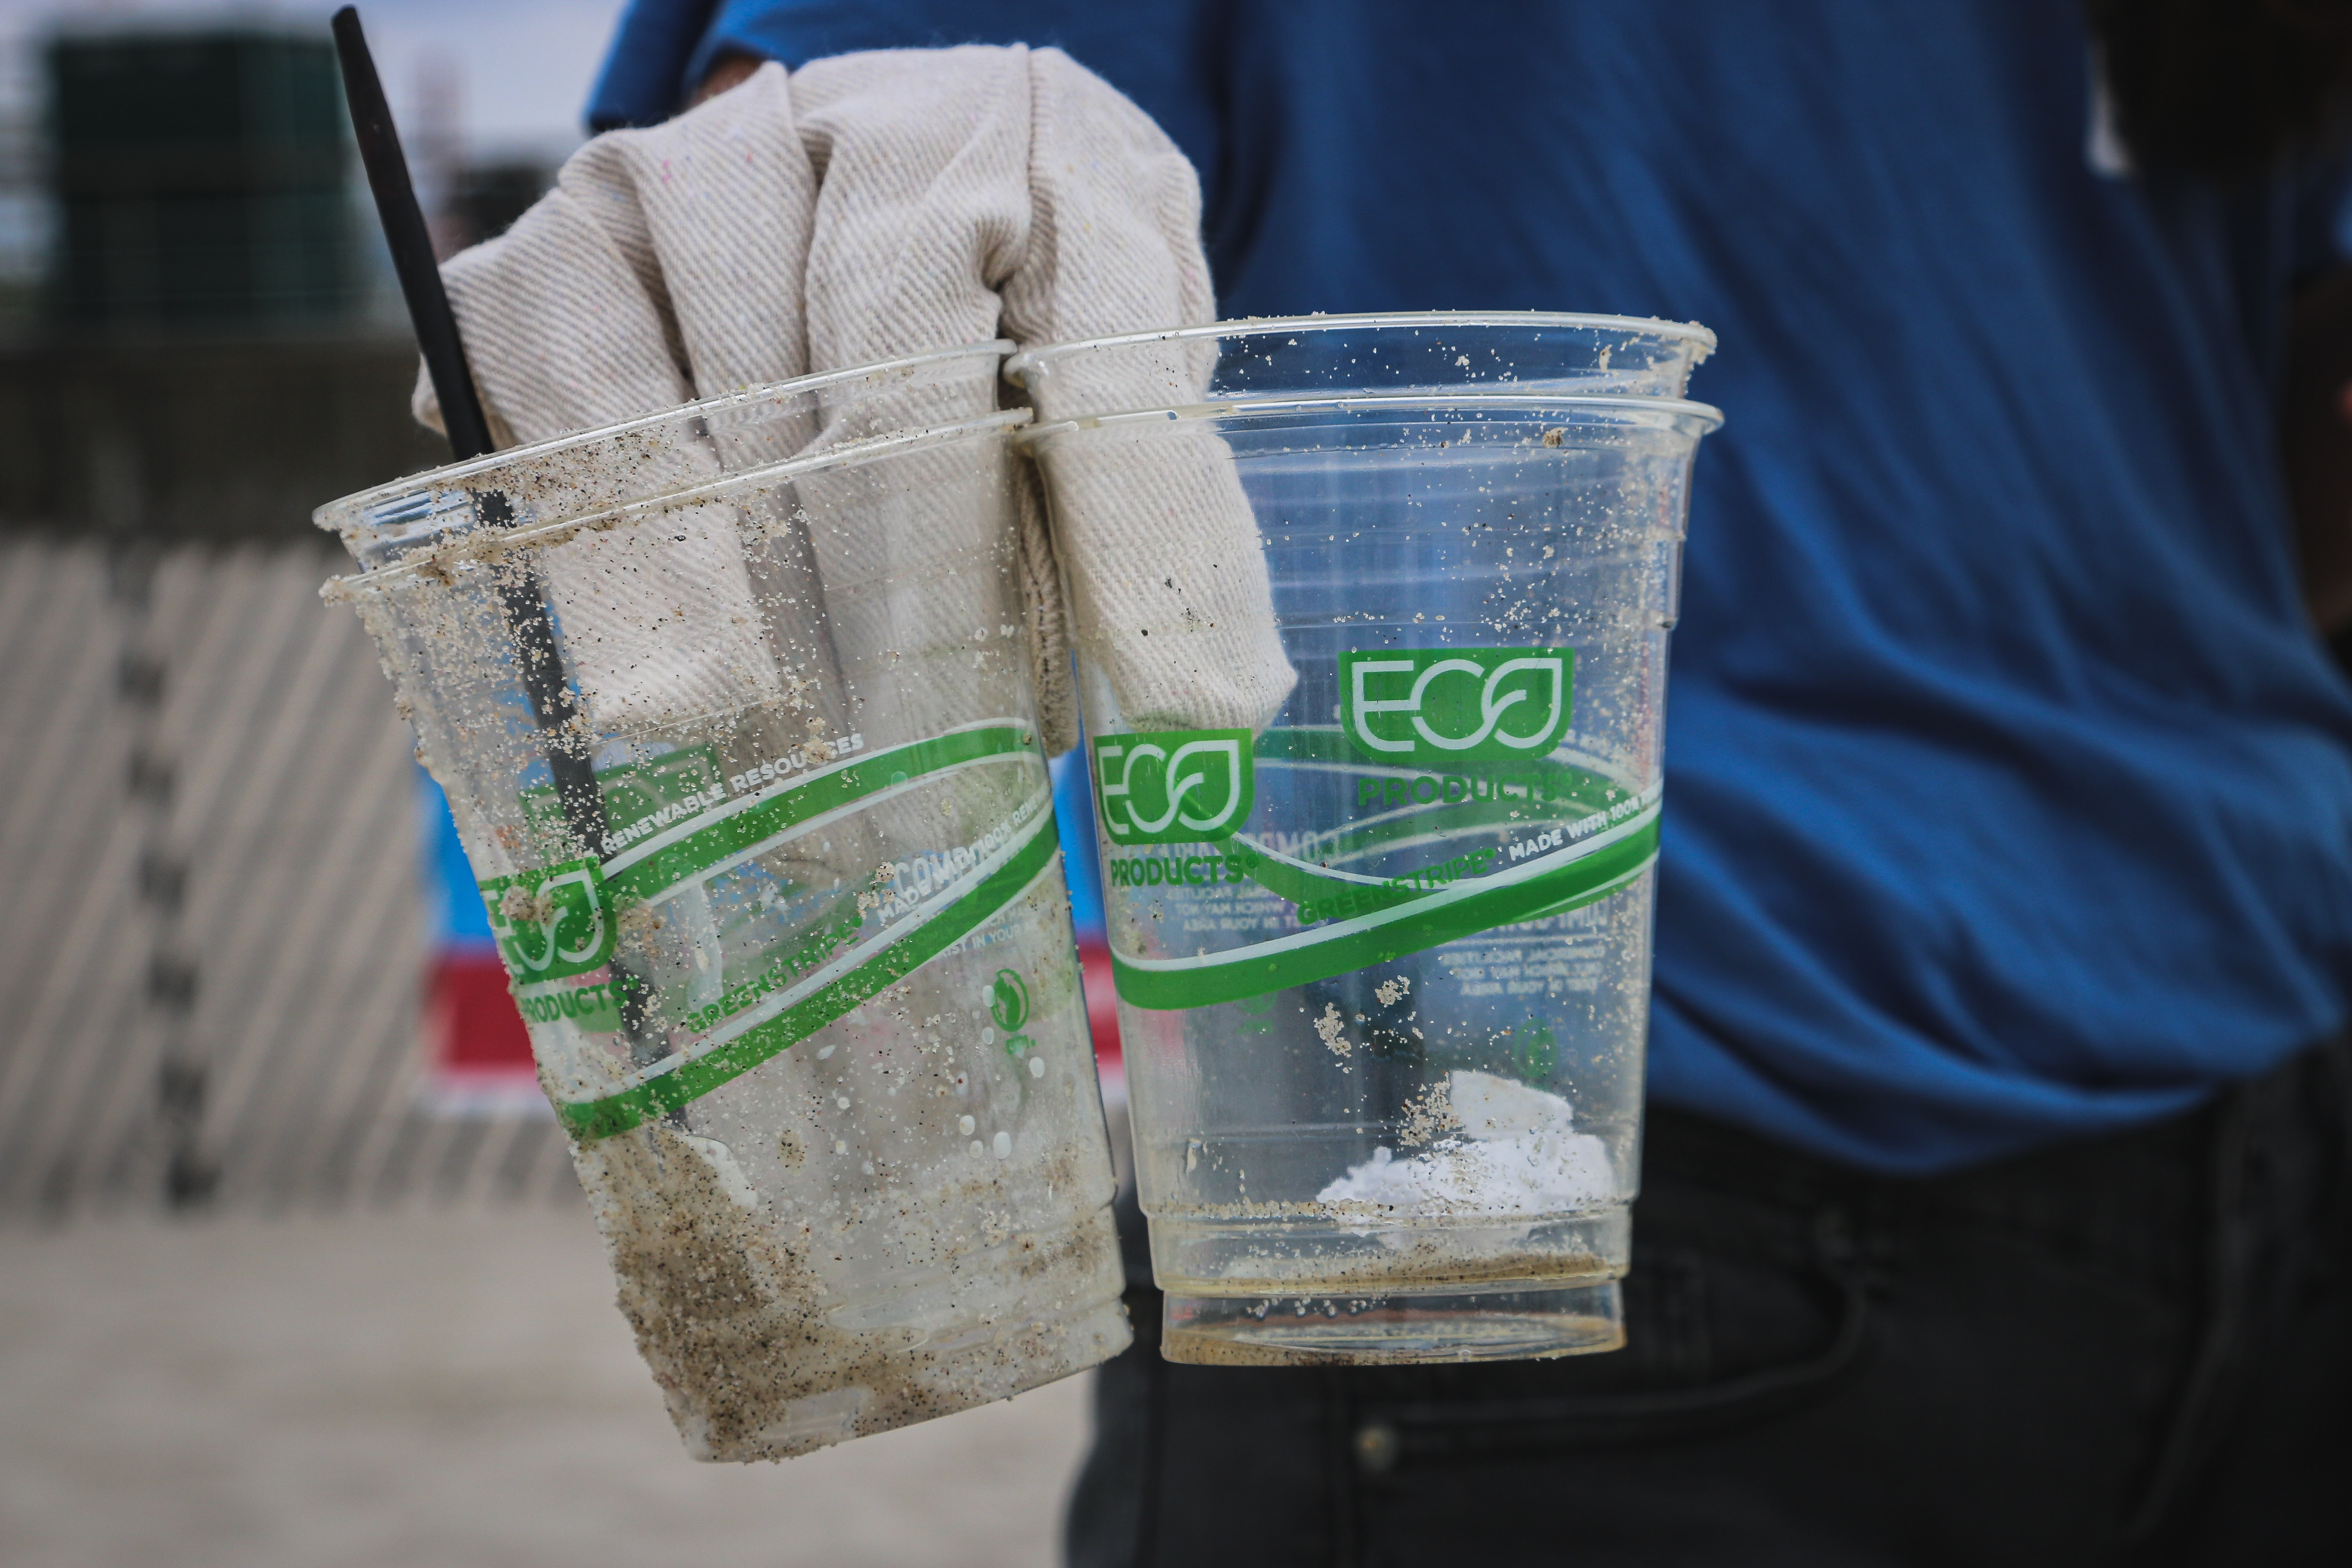 Two clear plastic cups about to be recycled being held